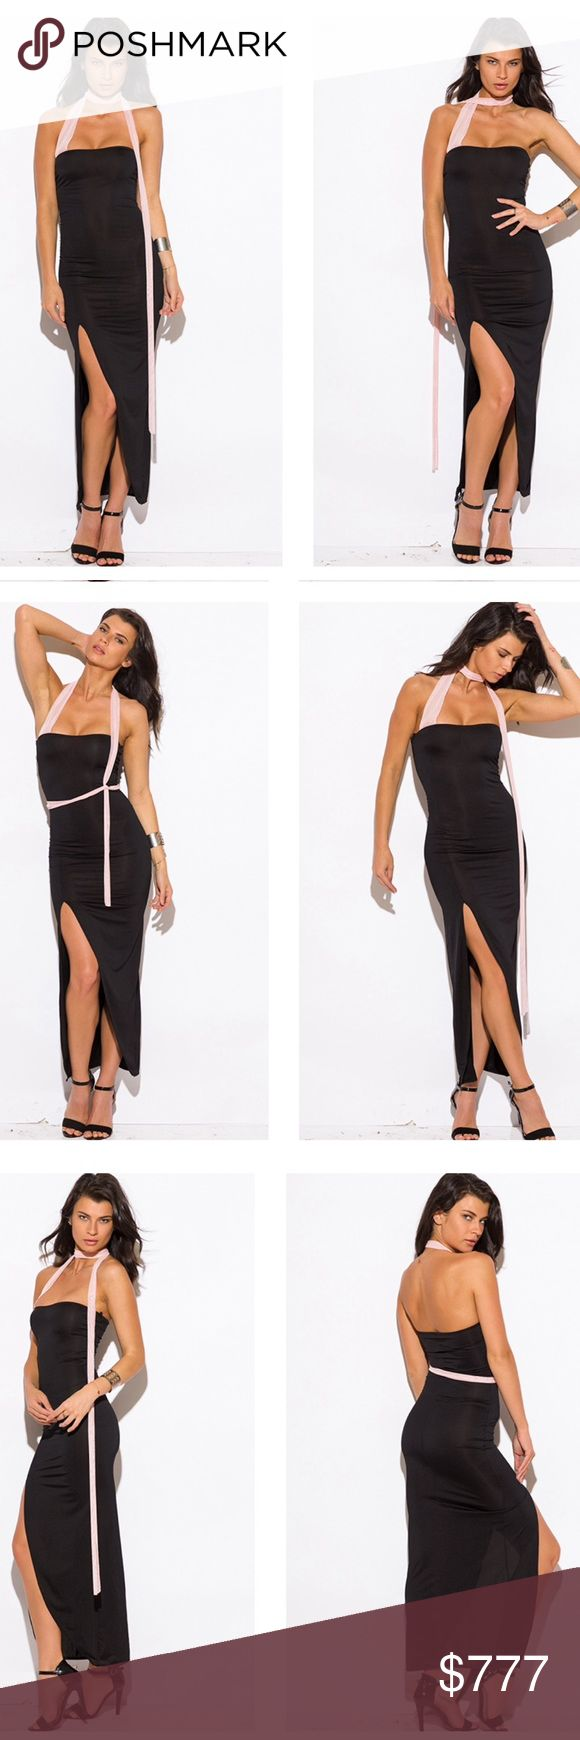 Black dress yellow sash - Coming Soon 2be Notified Strapless Party Dress Beautiful Black Maxi Dress With A